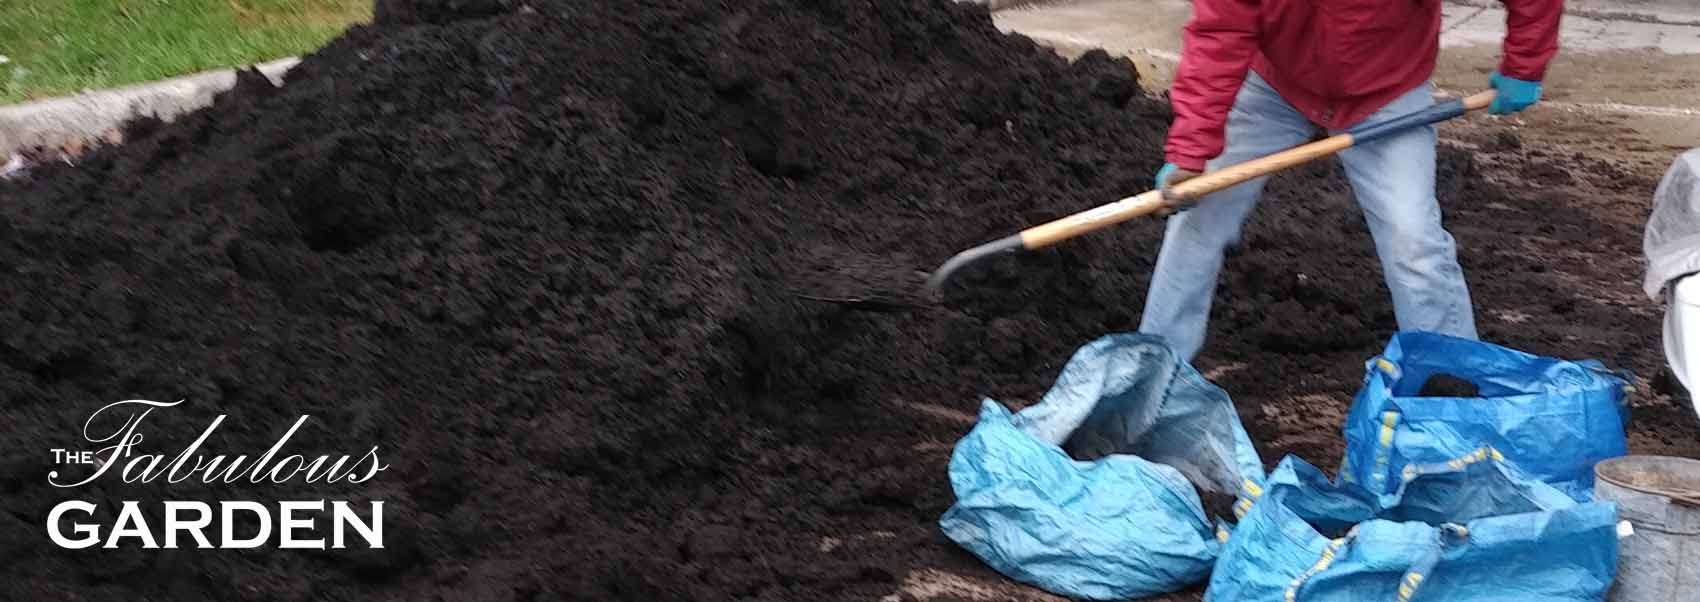 Compost for the garden: how savvy urban gardeners feed their gardens